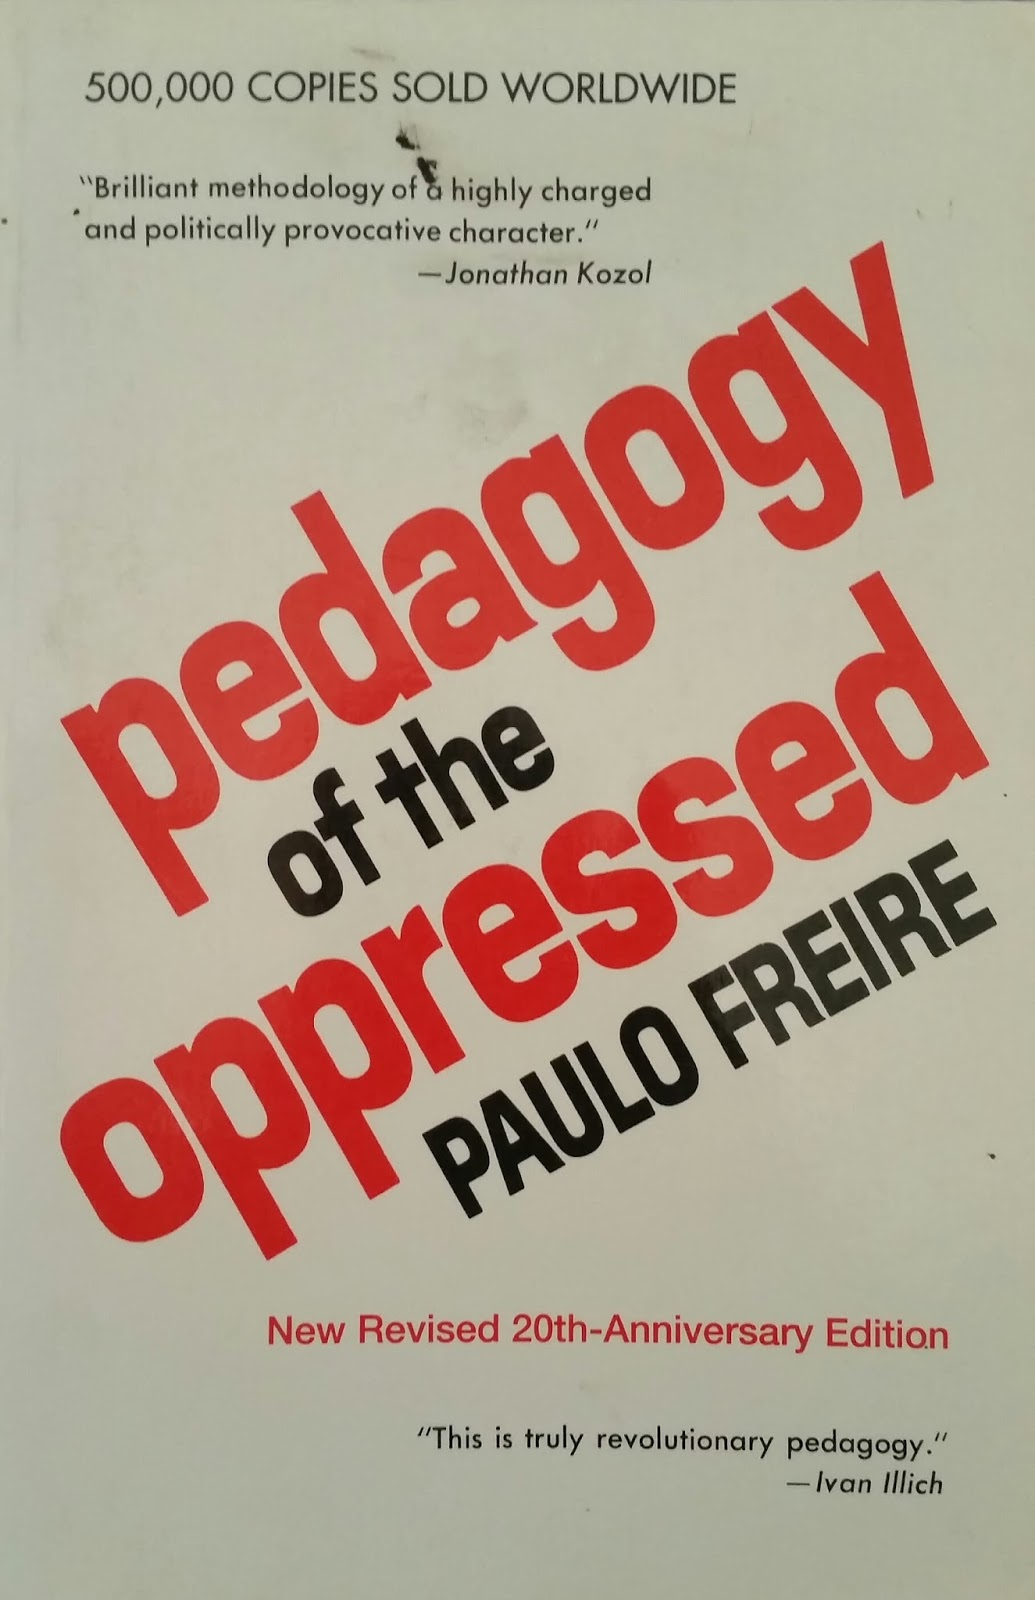 essay on pedagogy of the oppressed by paulo freire In this essay, we address the perspective of progressive educators who maintain   to build critical consciousness about oppression in contemporary capi-  the  educational theory of paulo freire also has had a strong influ.